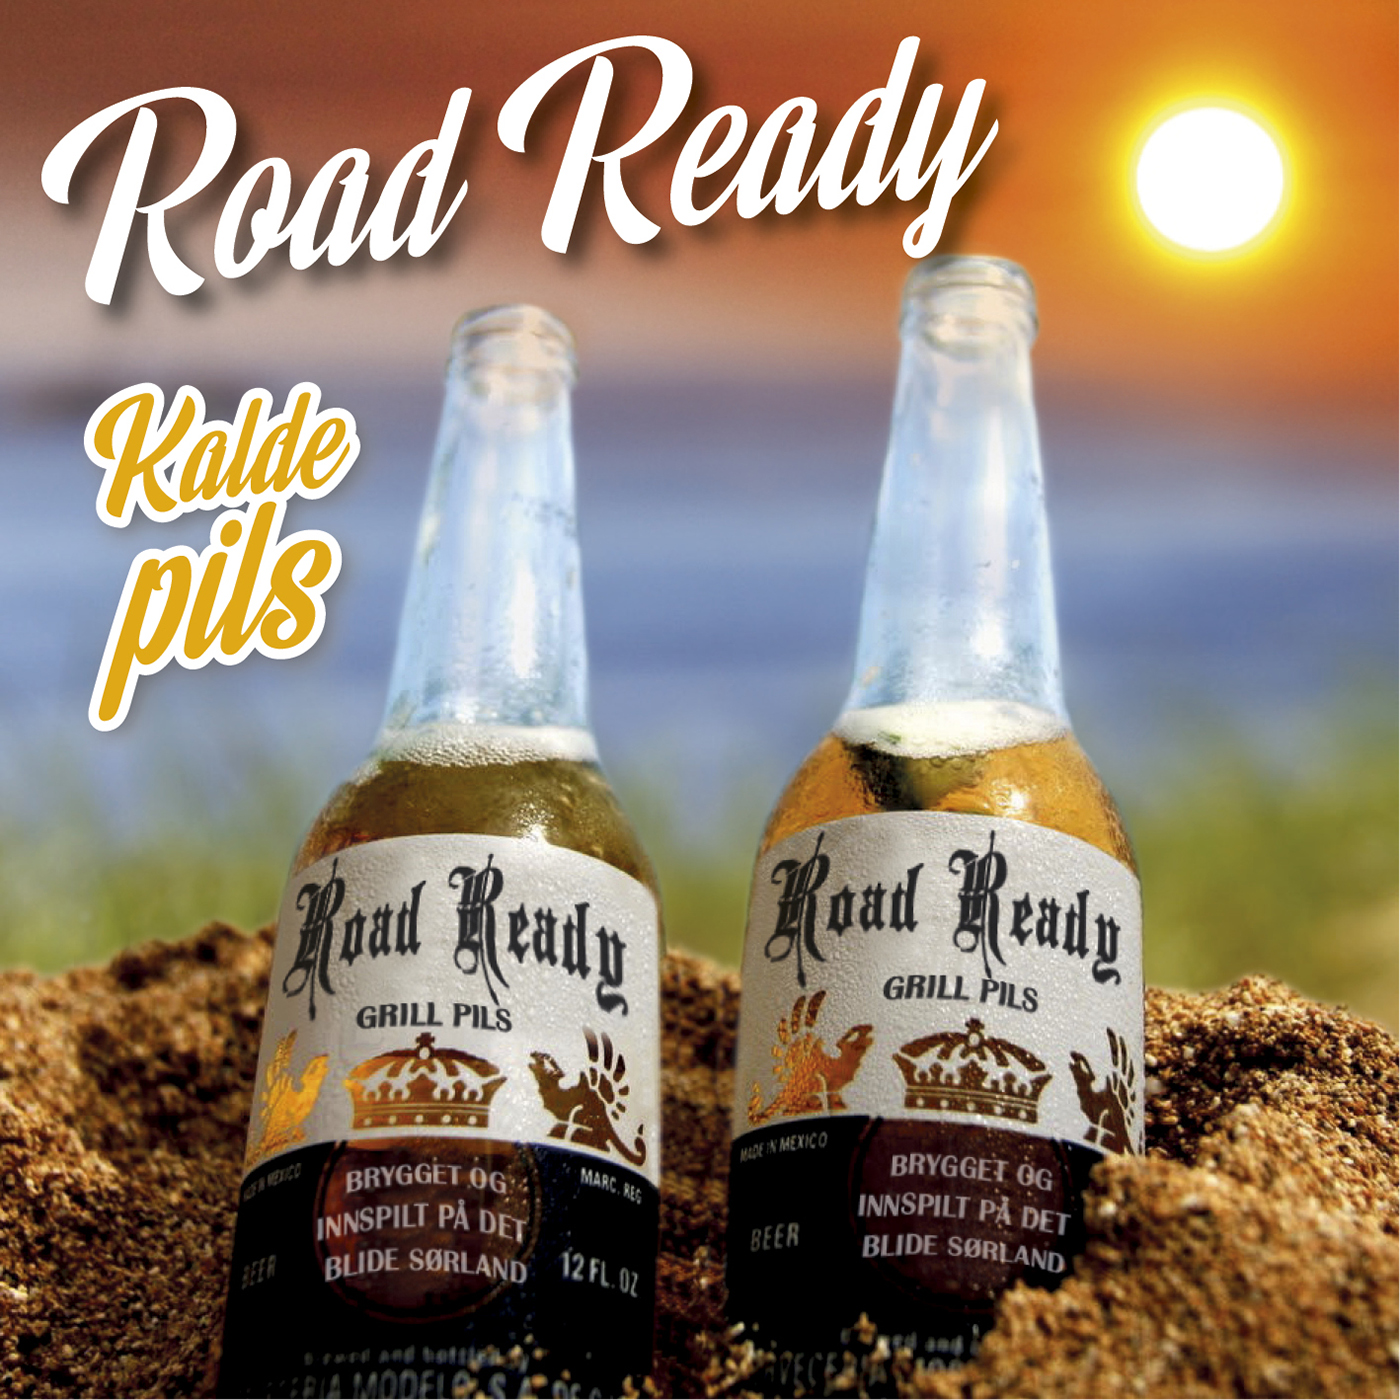 Road Ready Kalde Pils artwork preview2